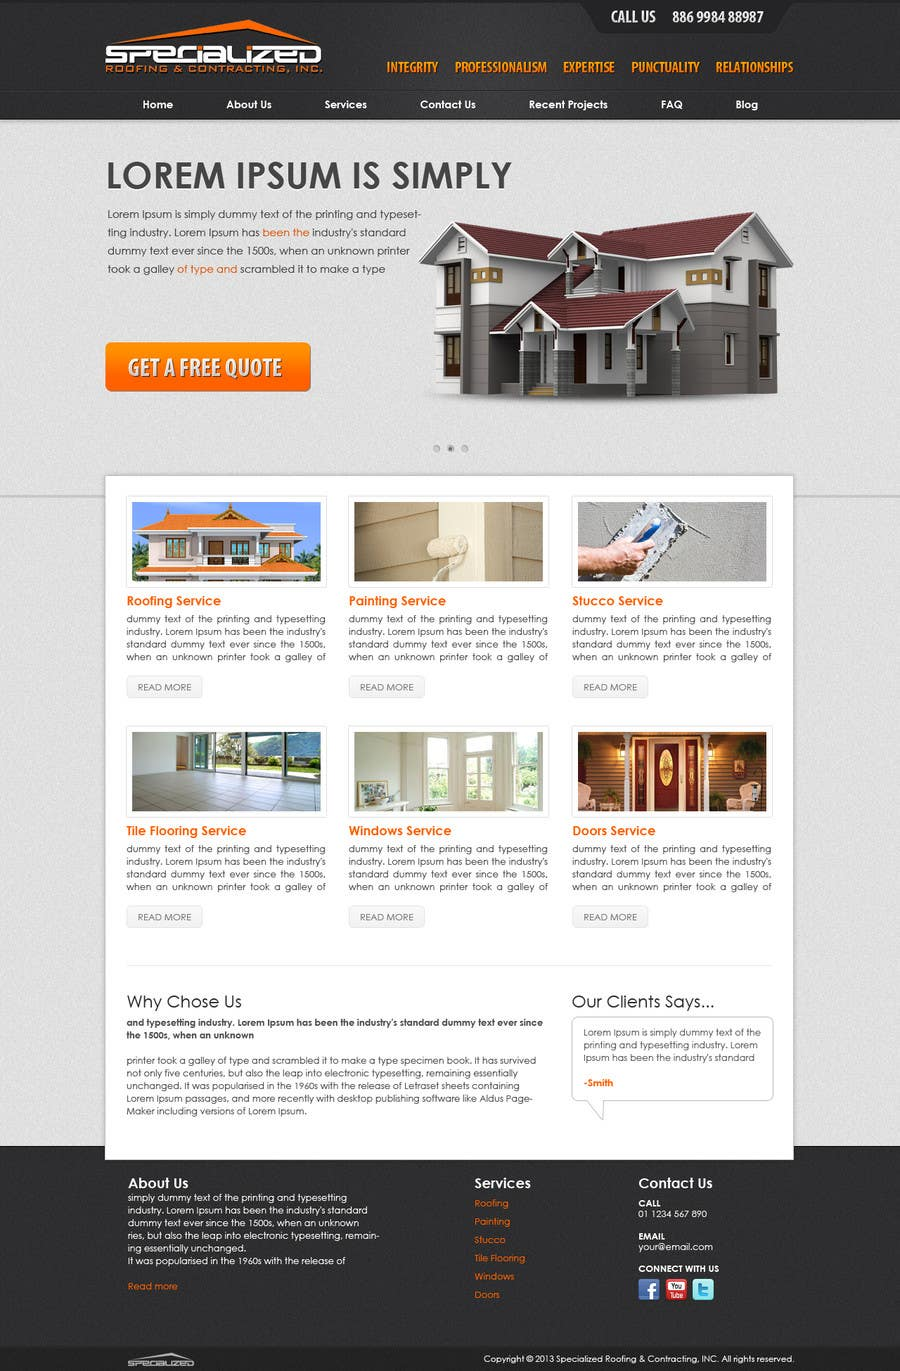 Bài tham dự cuộc thi #                                        12                                      cho                                         Wordpress Theme Design for Specialized Roofing & Contracting Inc.